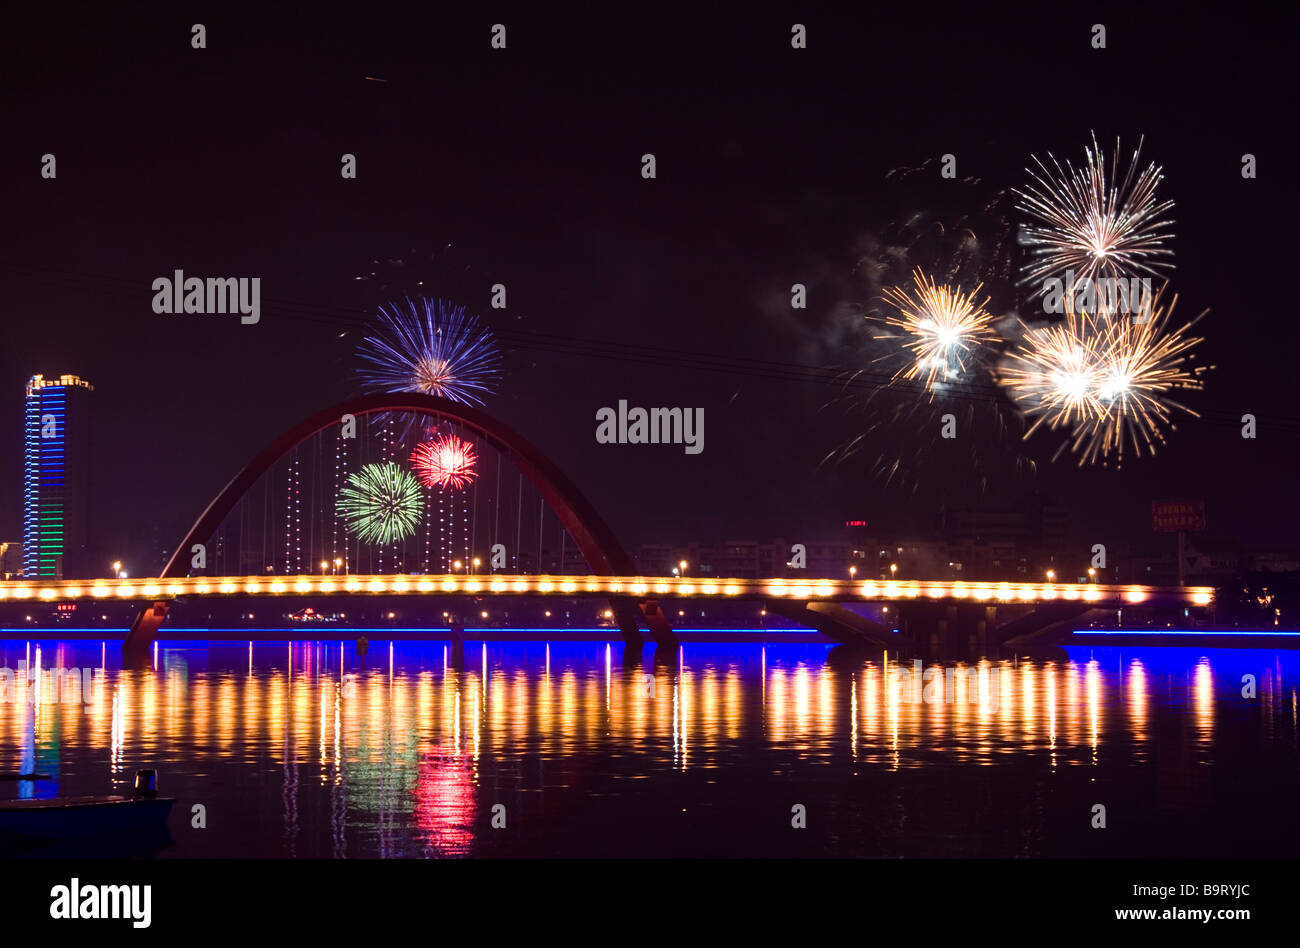 Fireworks are let off for Chinese new year at most towns and cities in China. Stock Photo